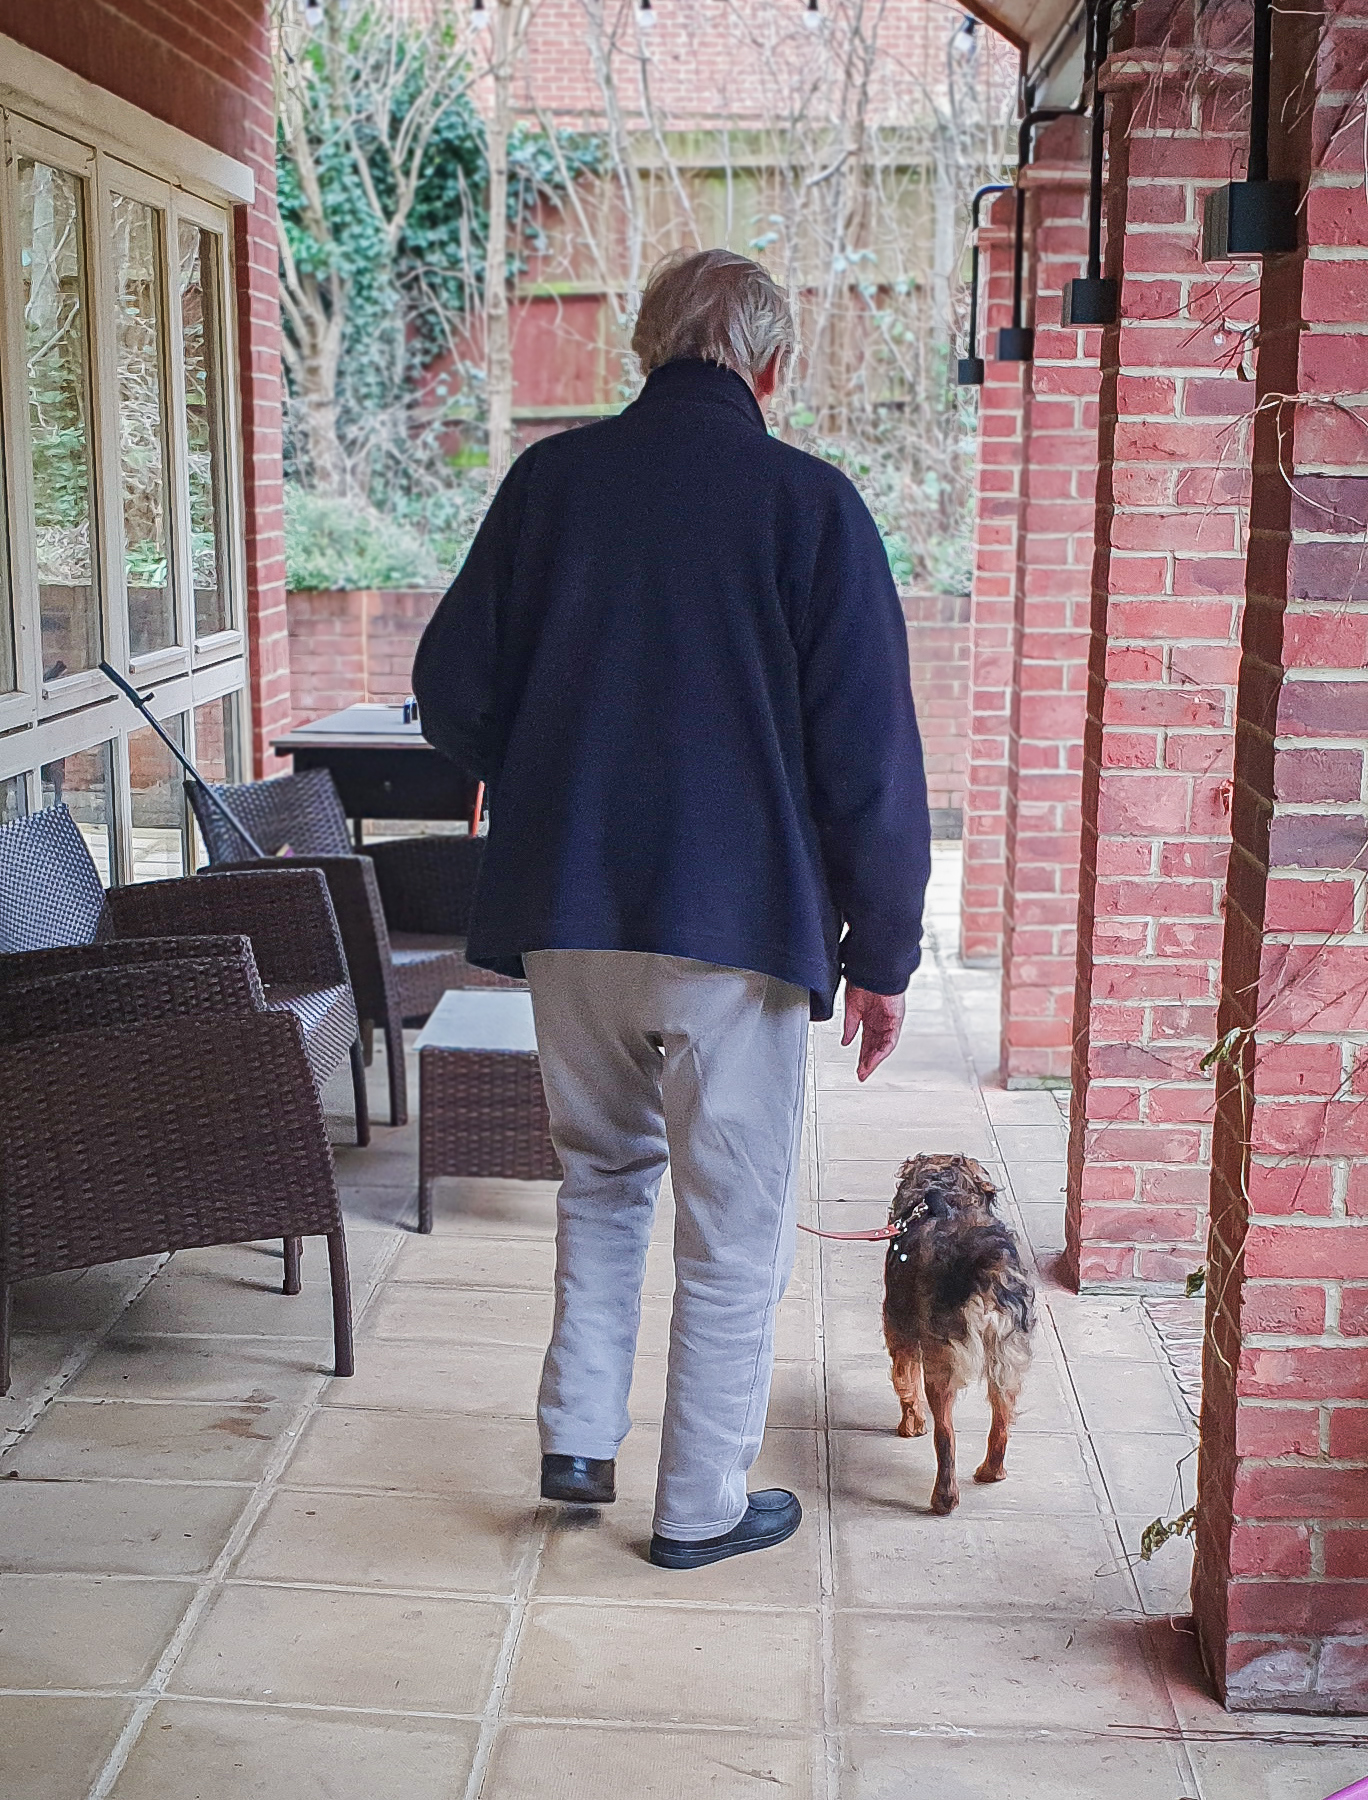 Older gentleman walking Thomas the rescue dog outside